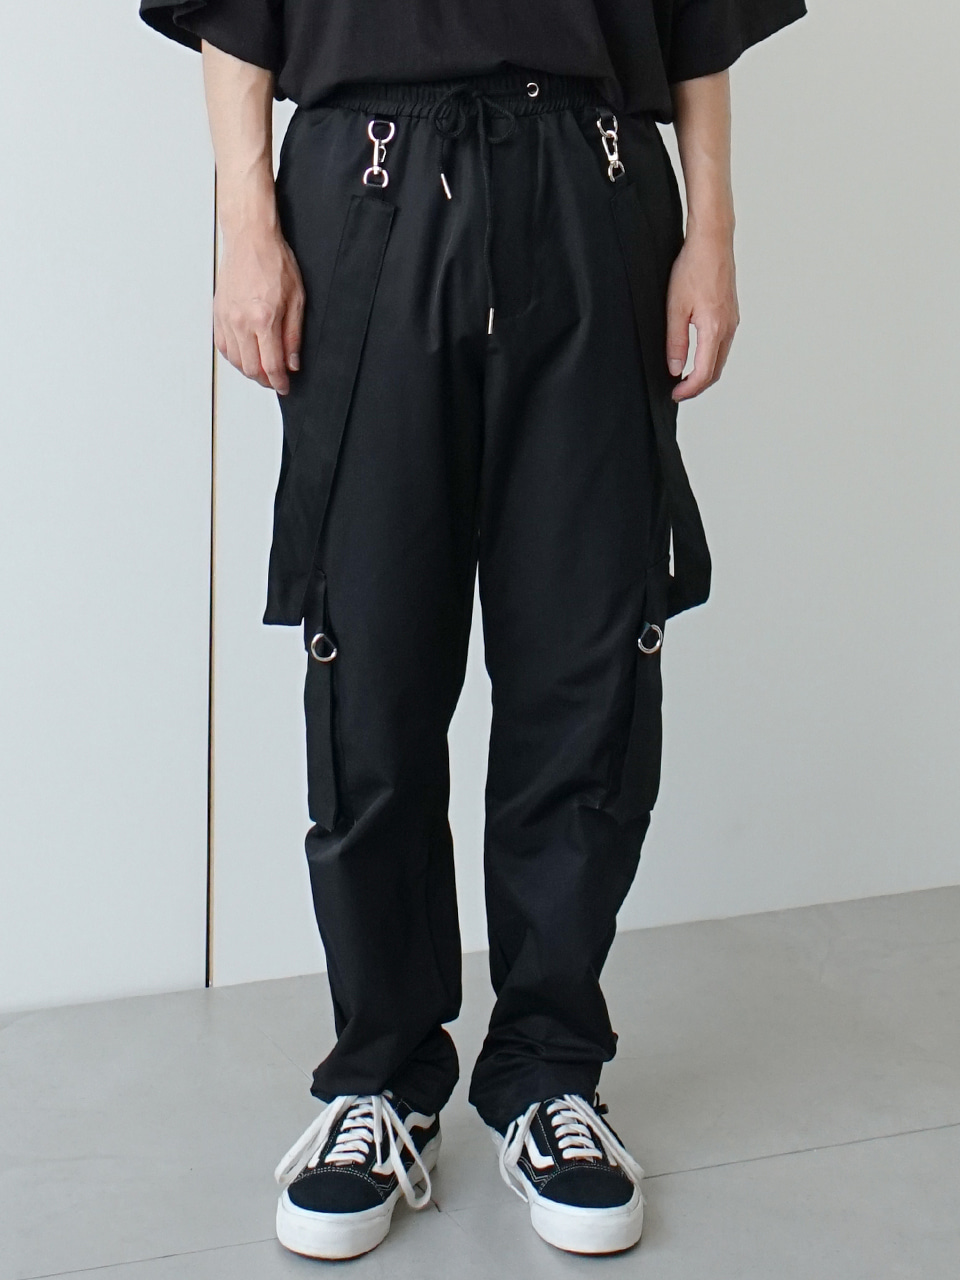 Ringa Strap Cargo Pants (2color)